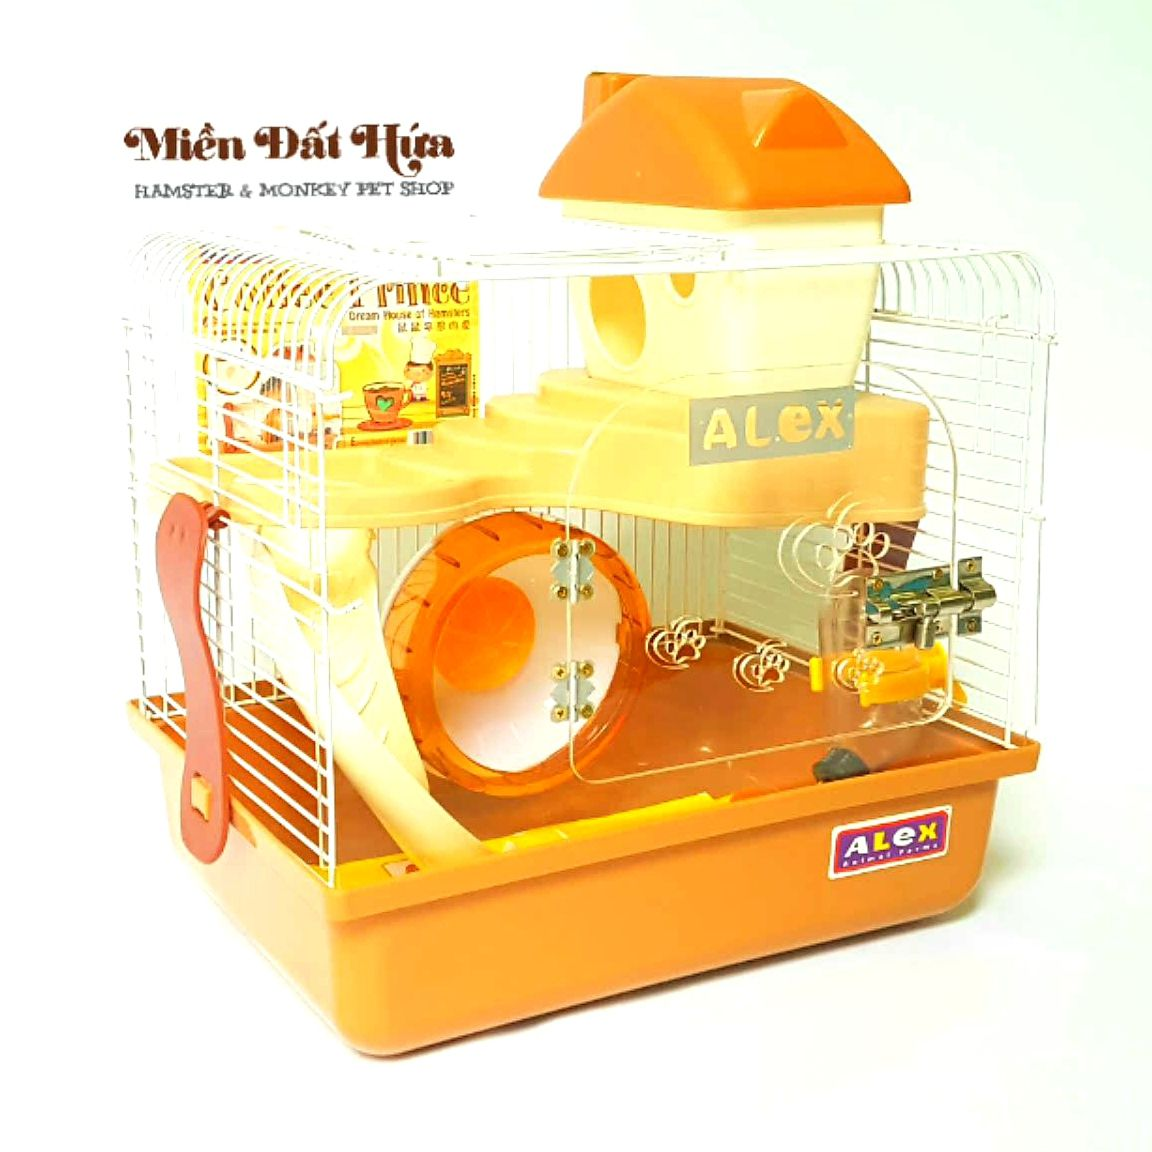 LỒNG cafe alex trong suốt cho hamster